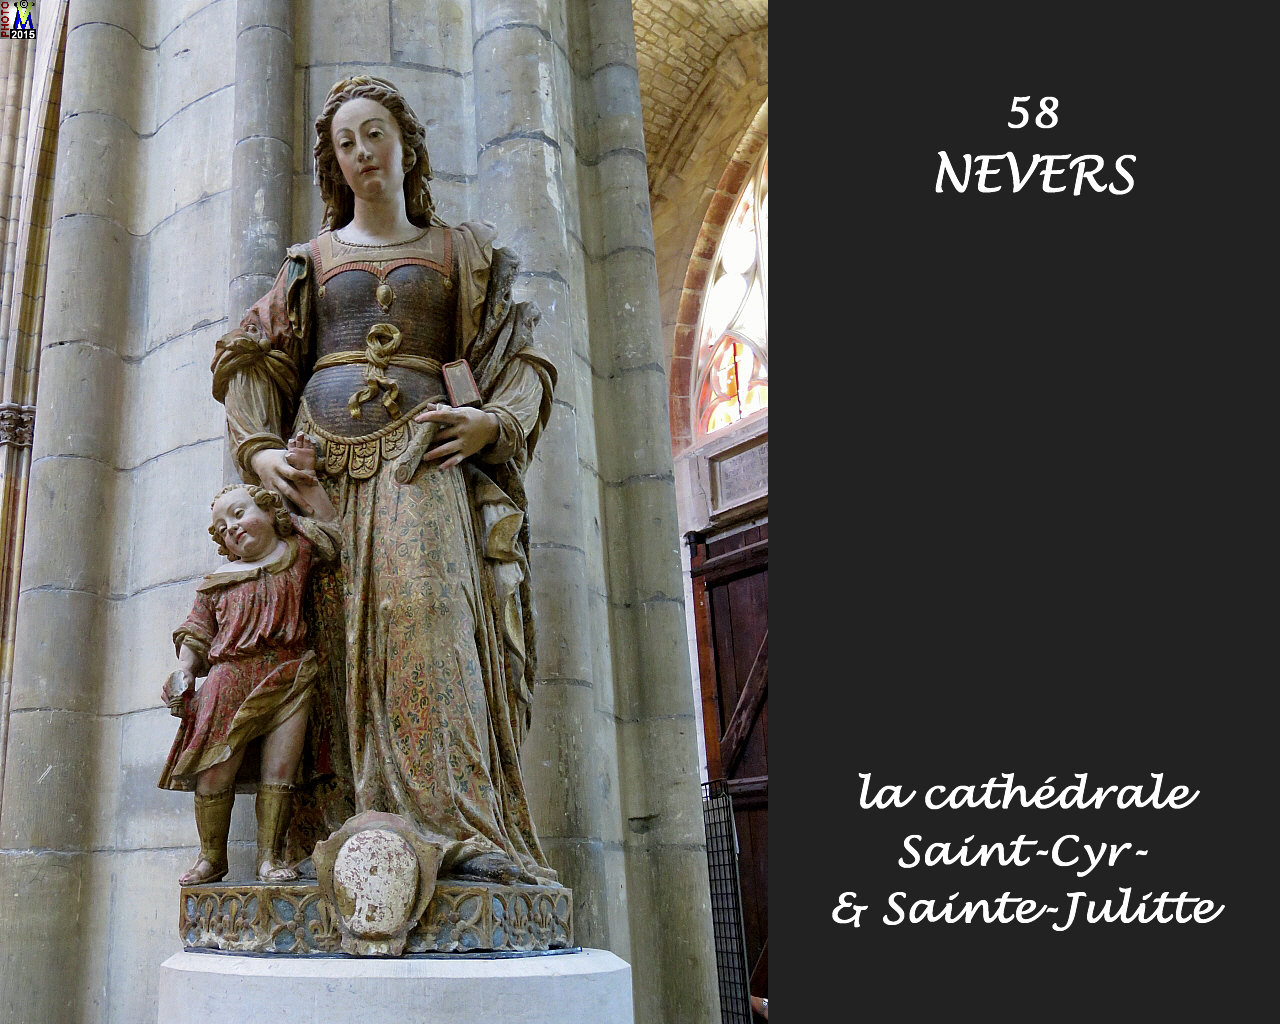 58NEVERS-cathedrale_280.jpg